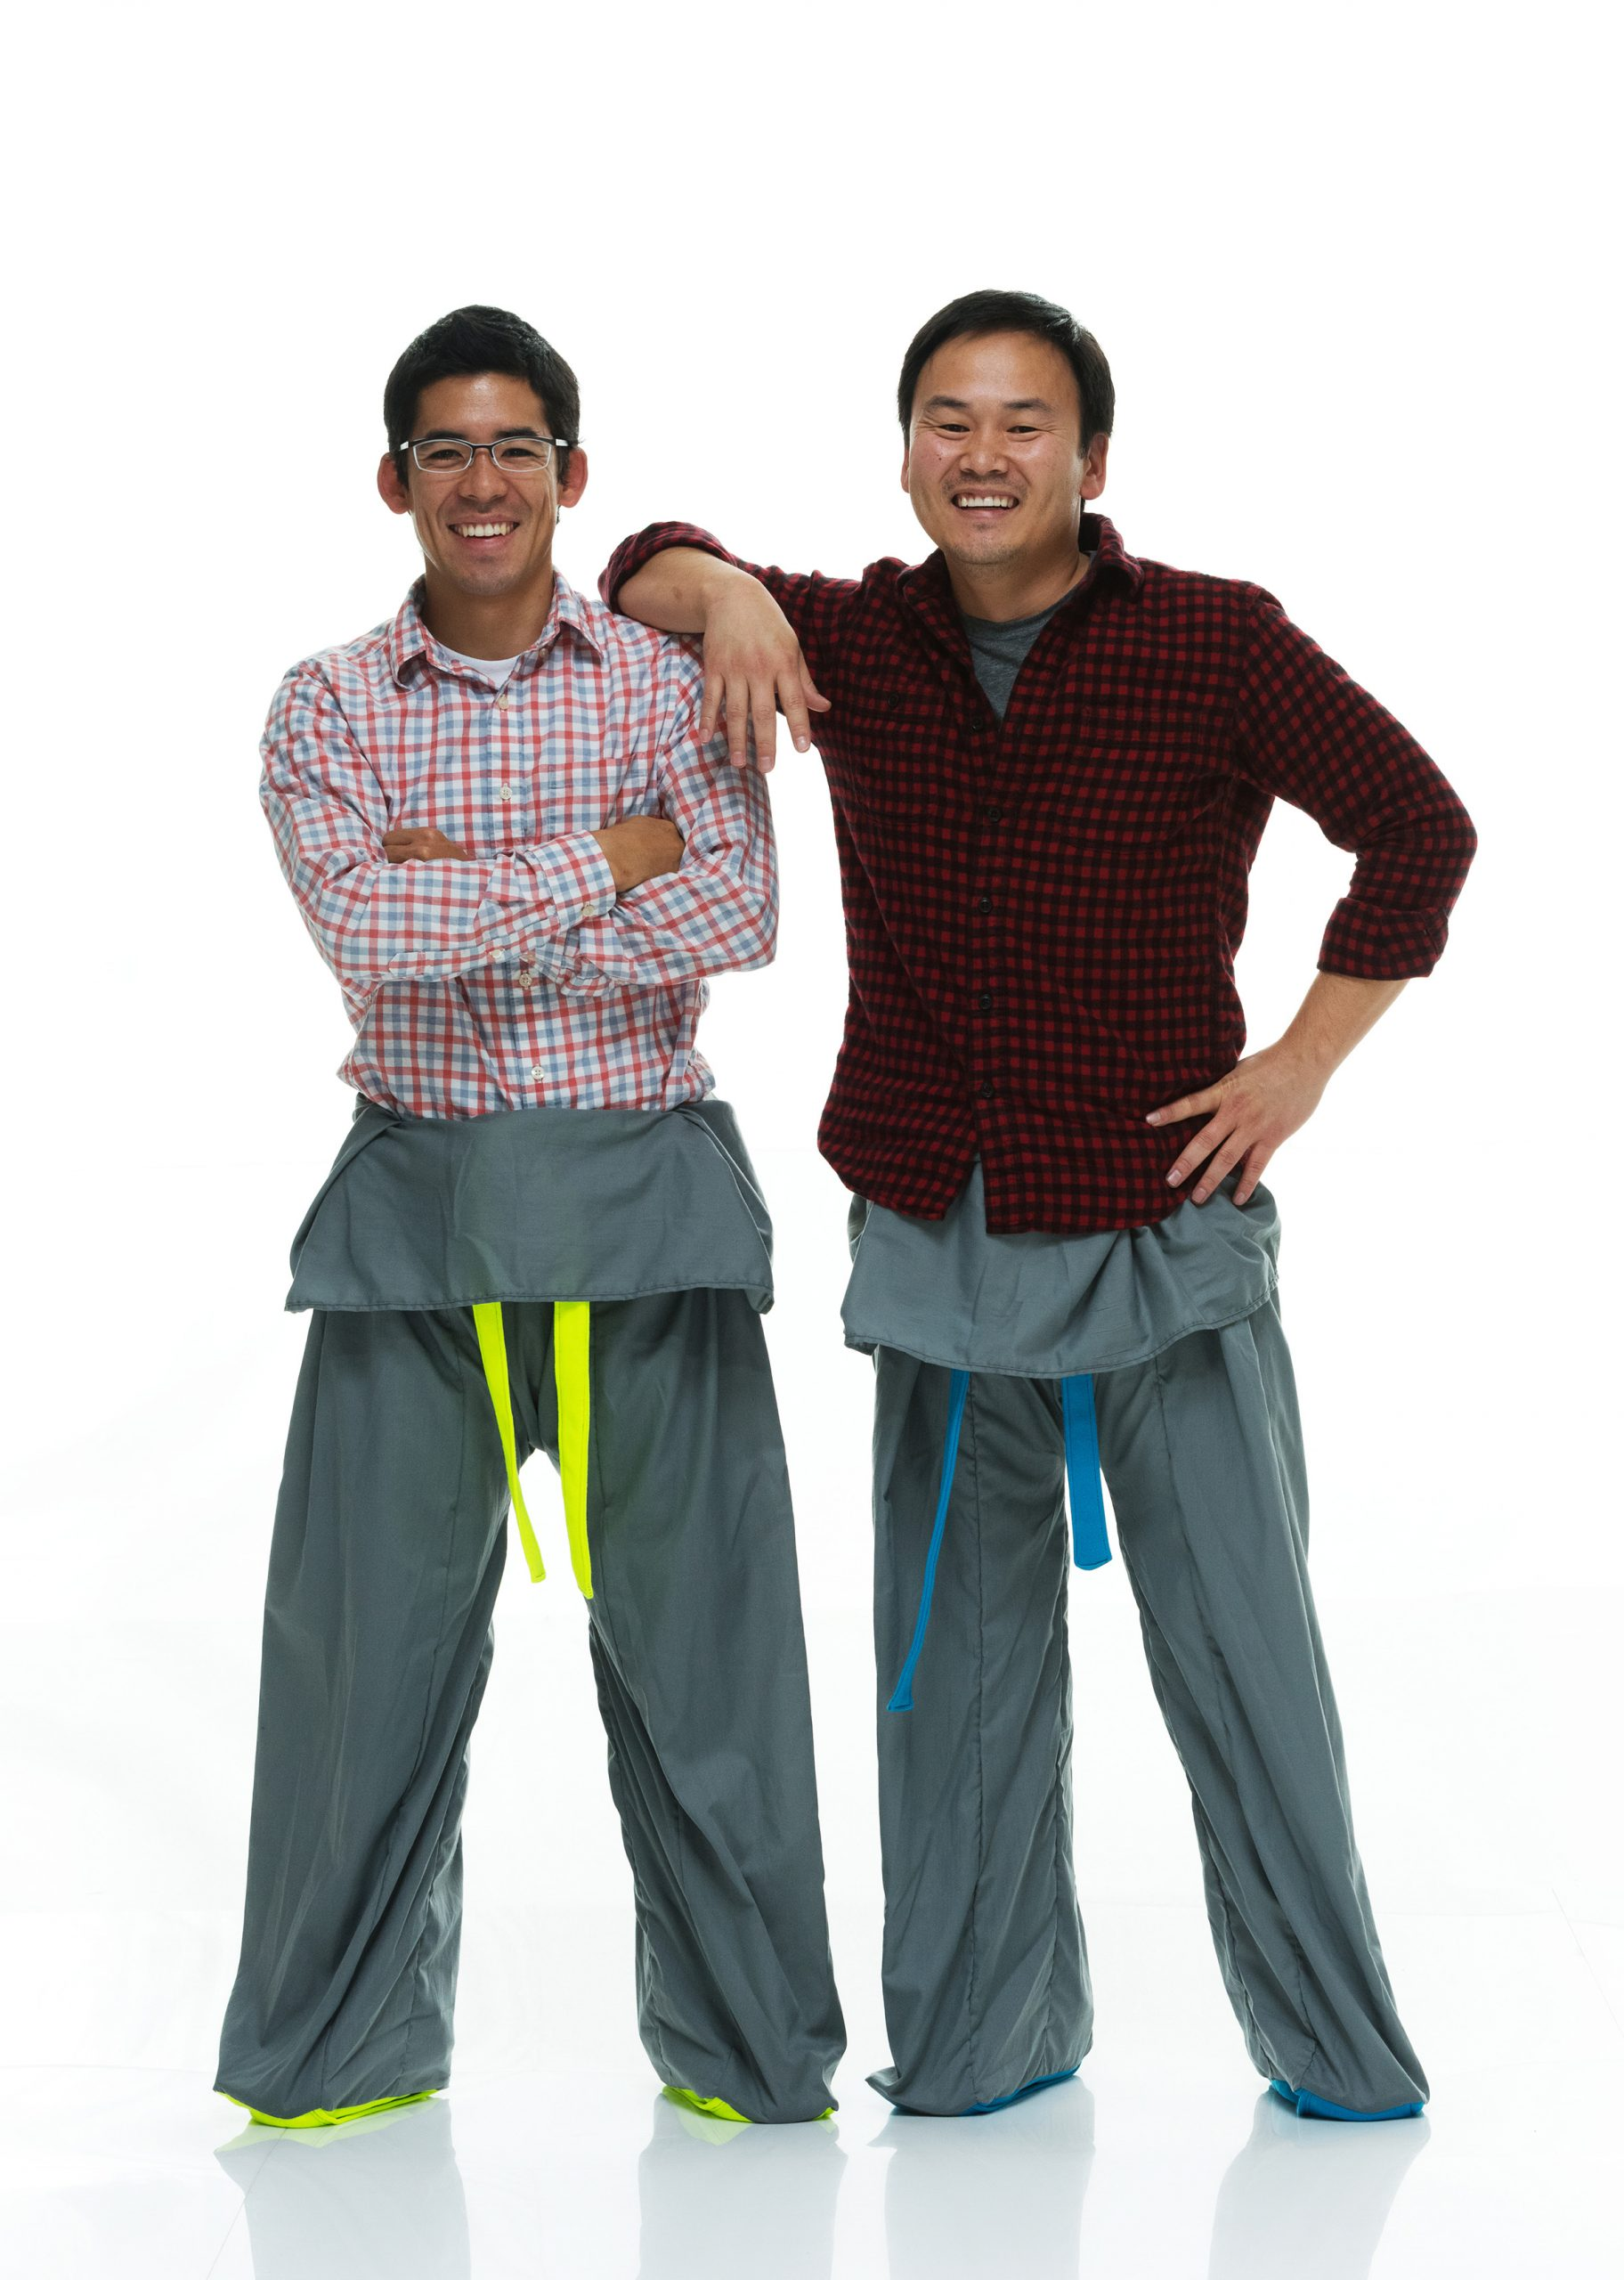 """University of Utah students Brayden Iwasaki (left) and Garred Lentz (right) came up with the idea for Sakpants, a cross between """"Thai fisherman pants"""" and children's footie pajamas, in 2013. They developed an initial prototype and received a $3,000 seed grant from a U program affiliated with the Lassonde Entrepreneur Institute. The students used the seed money to refine their product and then raised nearly $25,000 from 476 supporters on Kickstarter.com to continue moving their idea to production."""